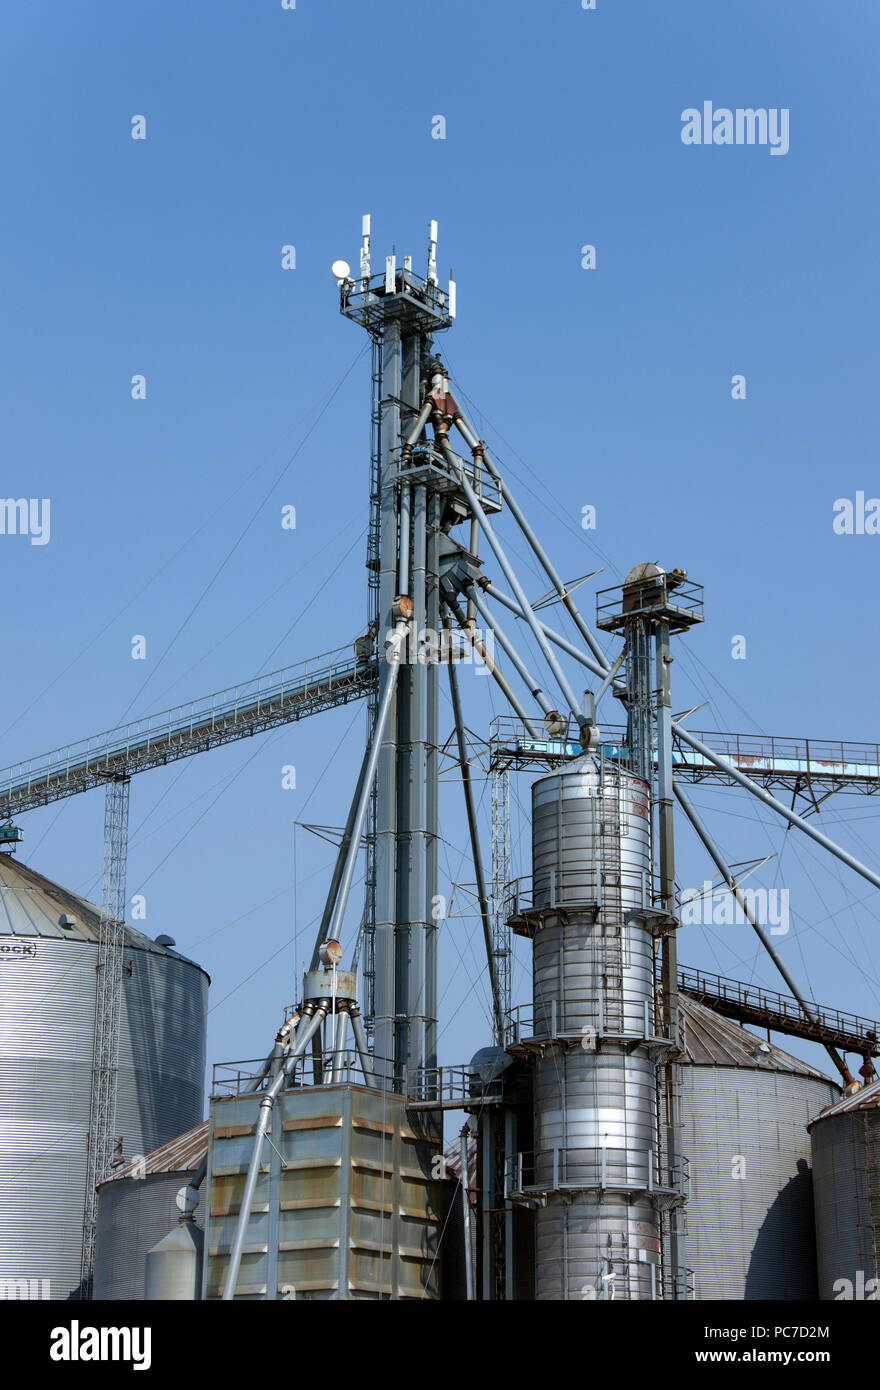 Communication and internet broadband antennas on rural farm cooperative feed and grain storage, handling, conditioning system tower, Whitelaw, WI Stock Photo